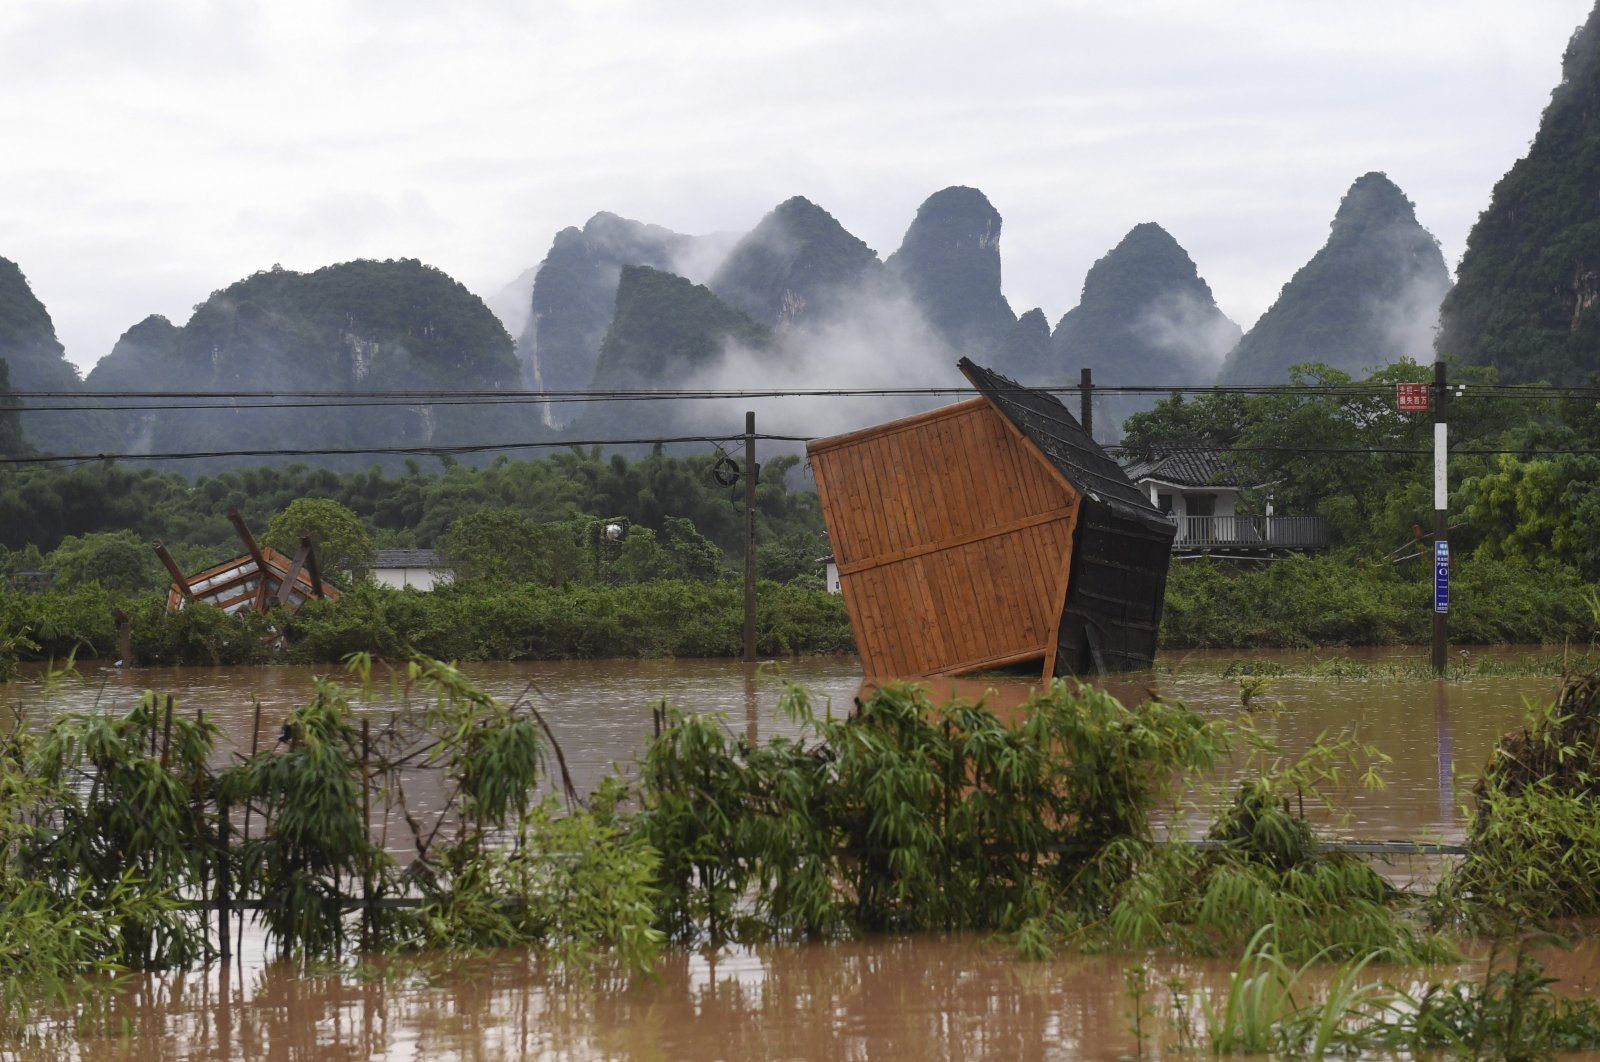 In this June 7, 2020, photo released by Xinhua News Agency, facilities at a tourism site are toppled in the aftermath of a flood after heavy downpour in Yangshuo of Guilin, south China's Guangxi Zhuang Autonomous Region. (Lu Boan/Xinhua via AP)